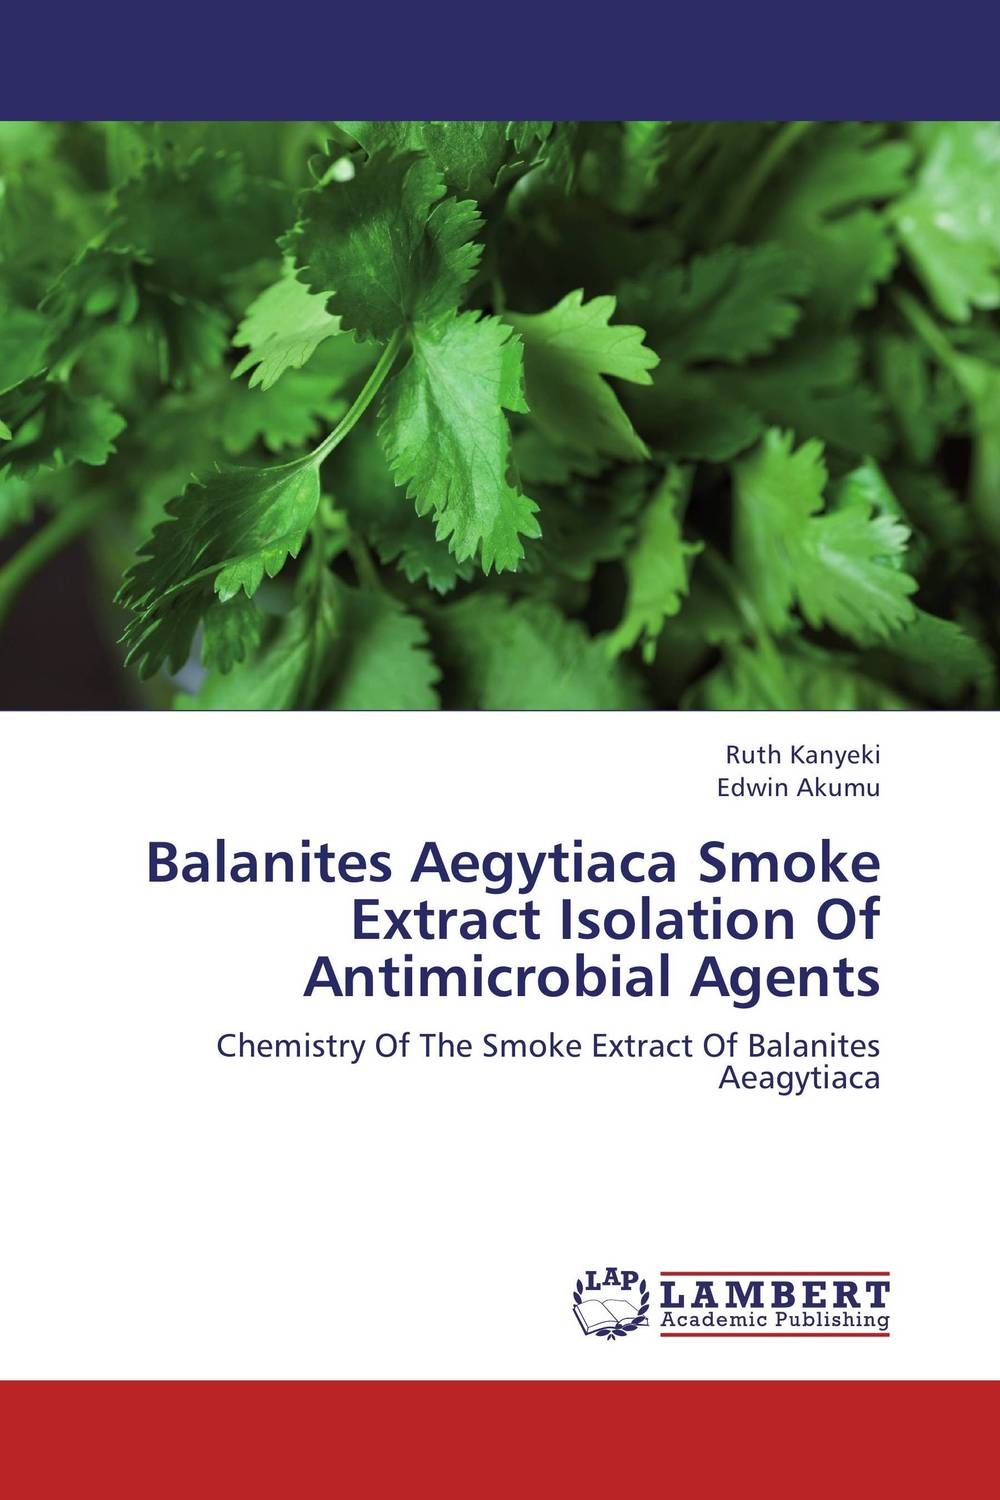 Balanites Aegytiaca Smoke Extract Isolation Of Antimicrobial Agents tiger in the smoke